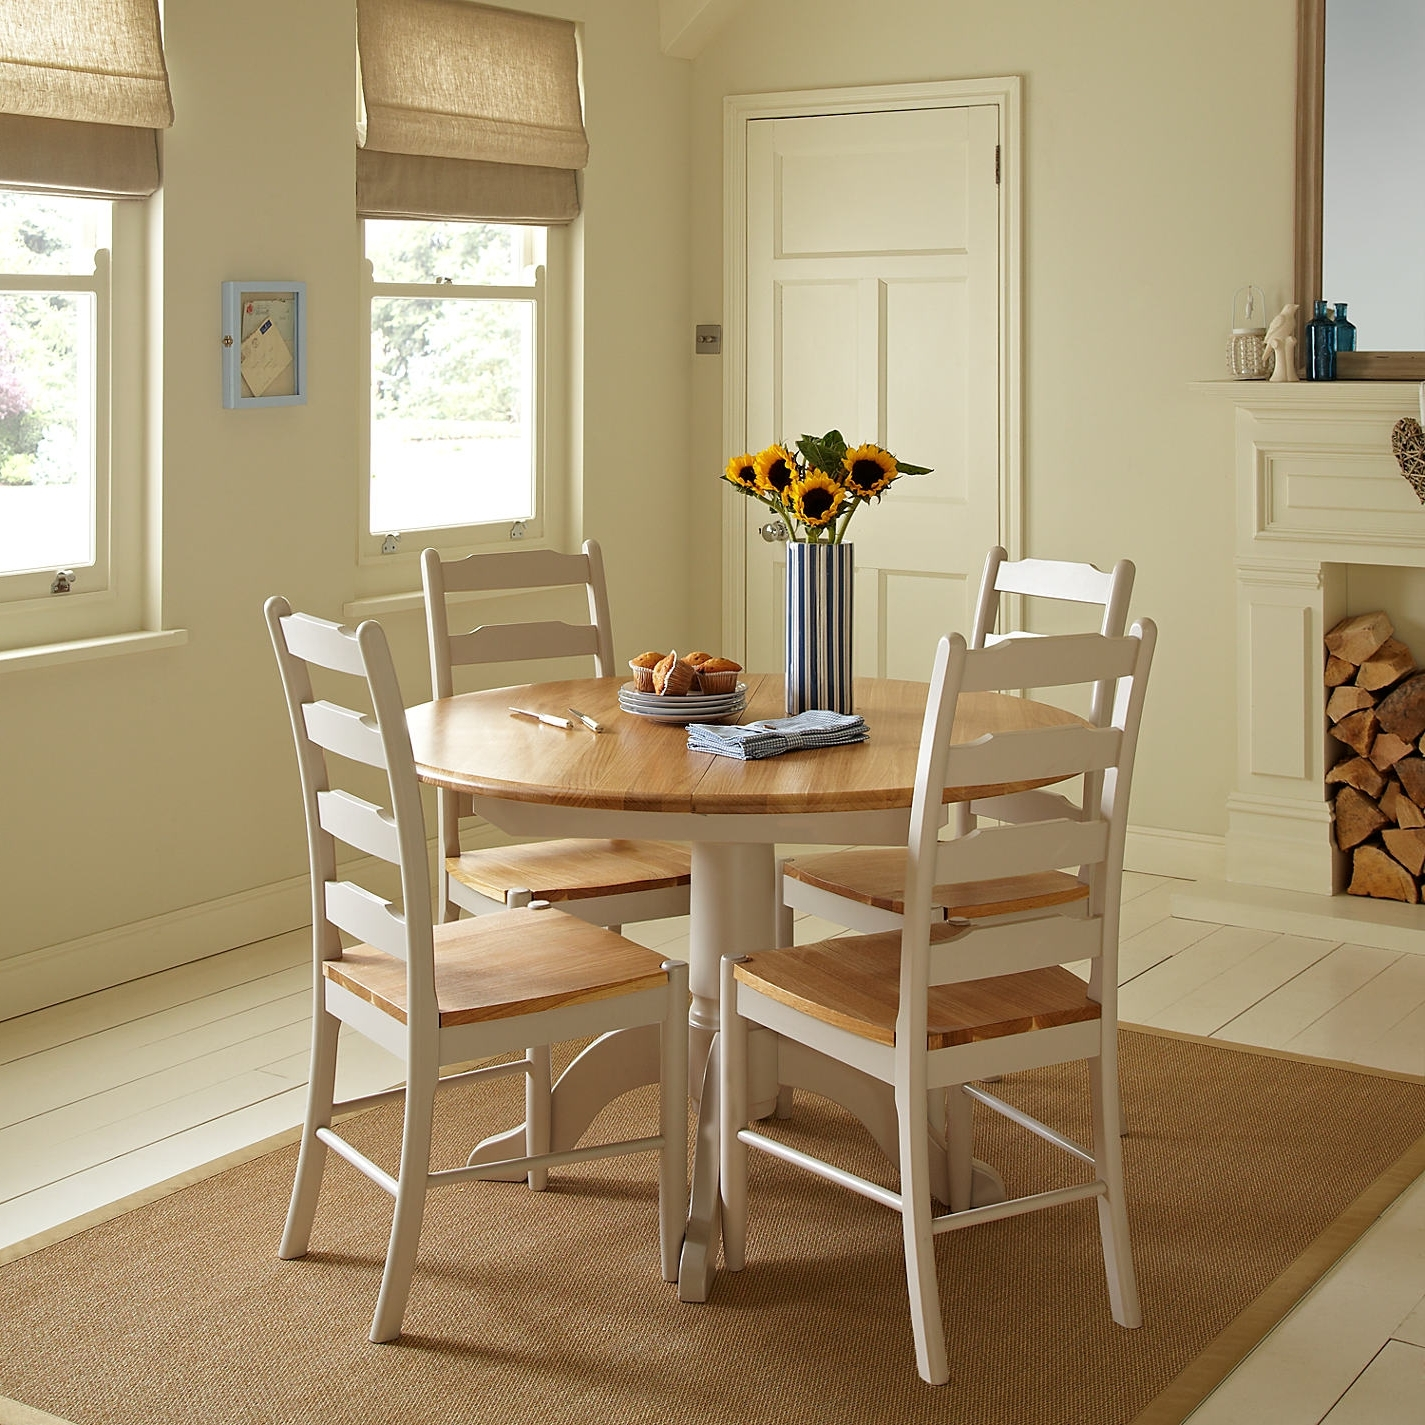 6 Seat Round Dining Tables with regard to Most Recently Released Dining Tables. Astonishing 6 Seat Round Dining Table: Extraordinary